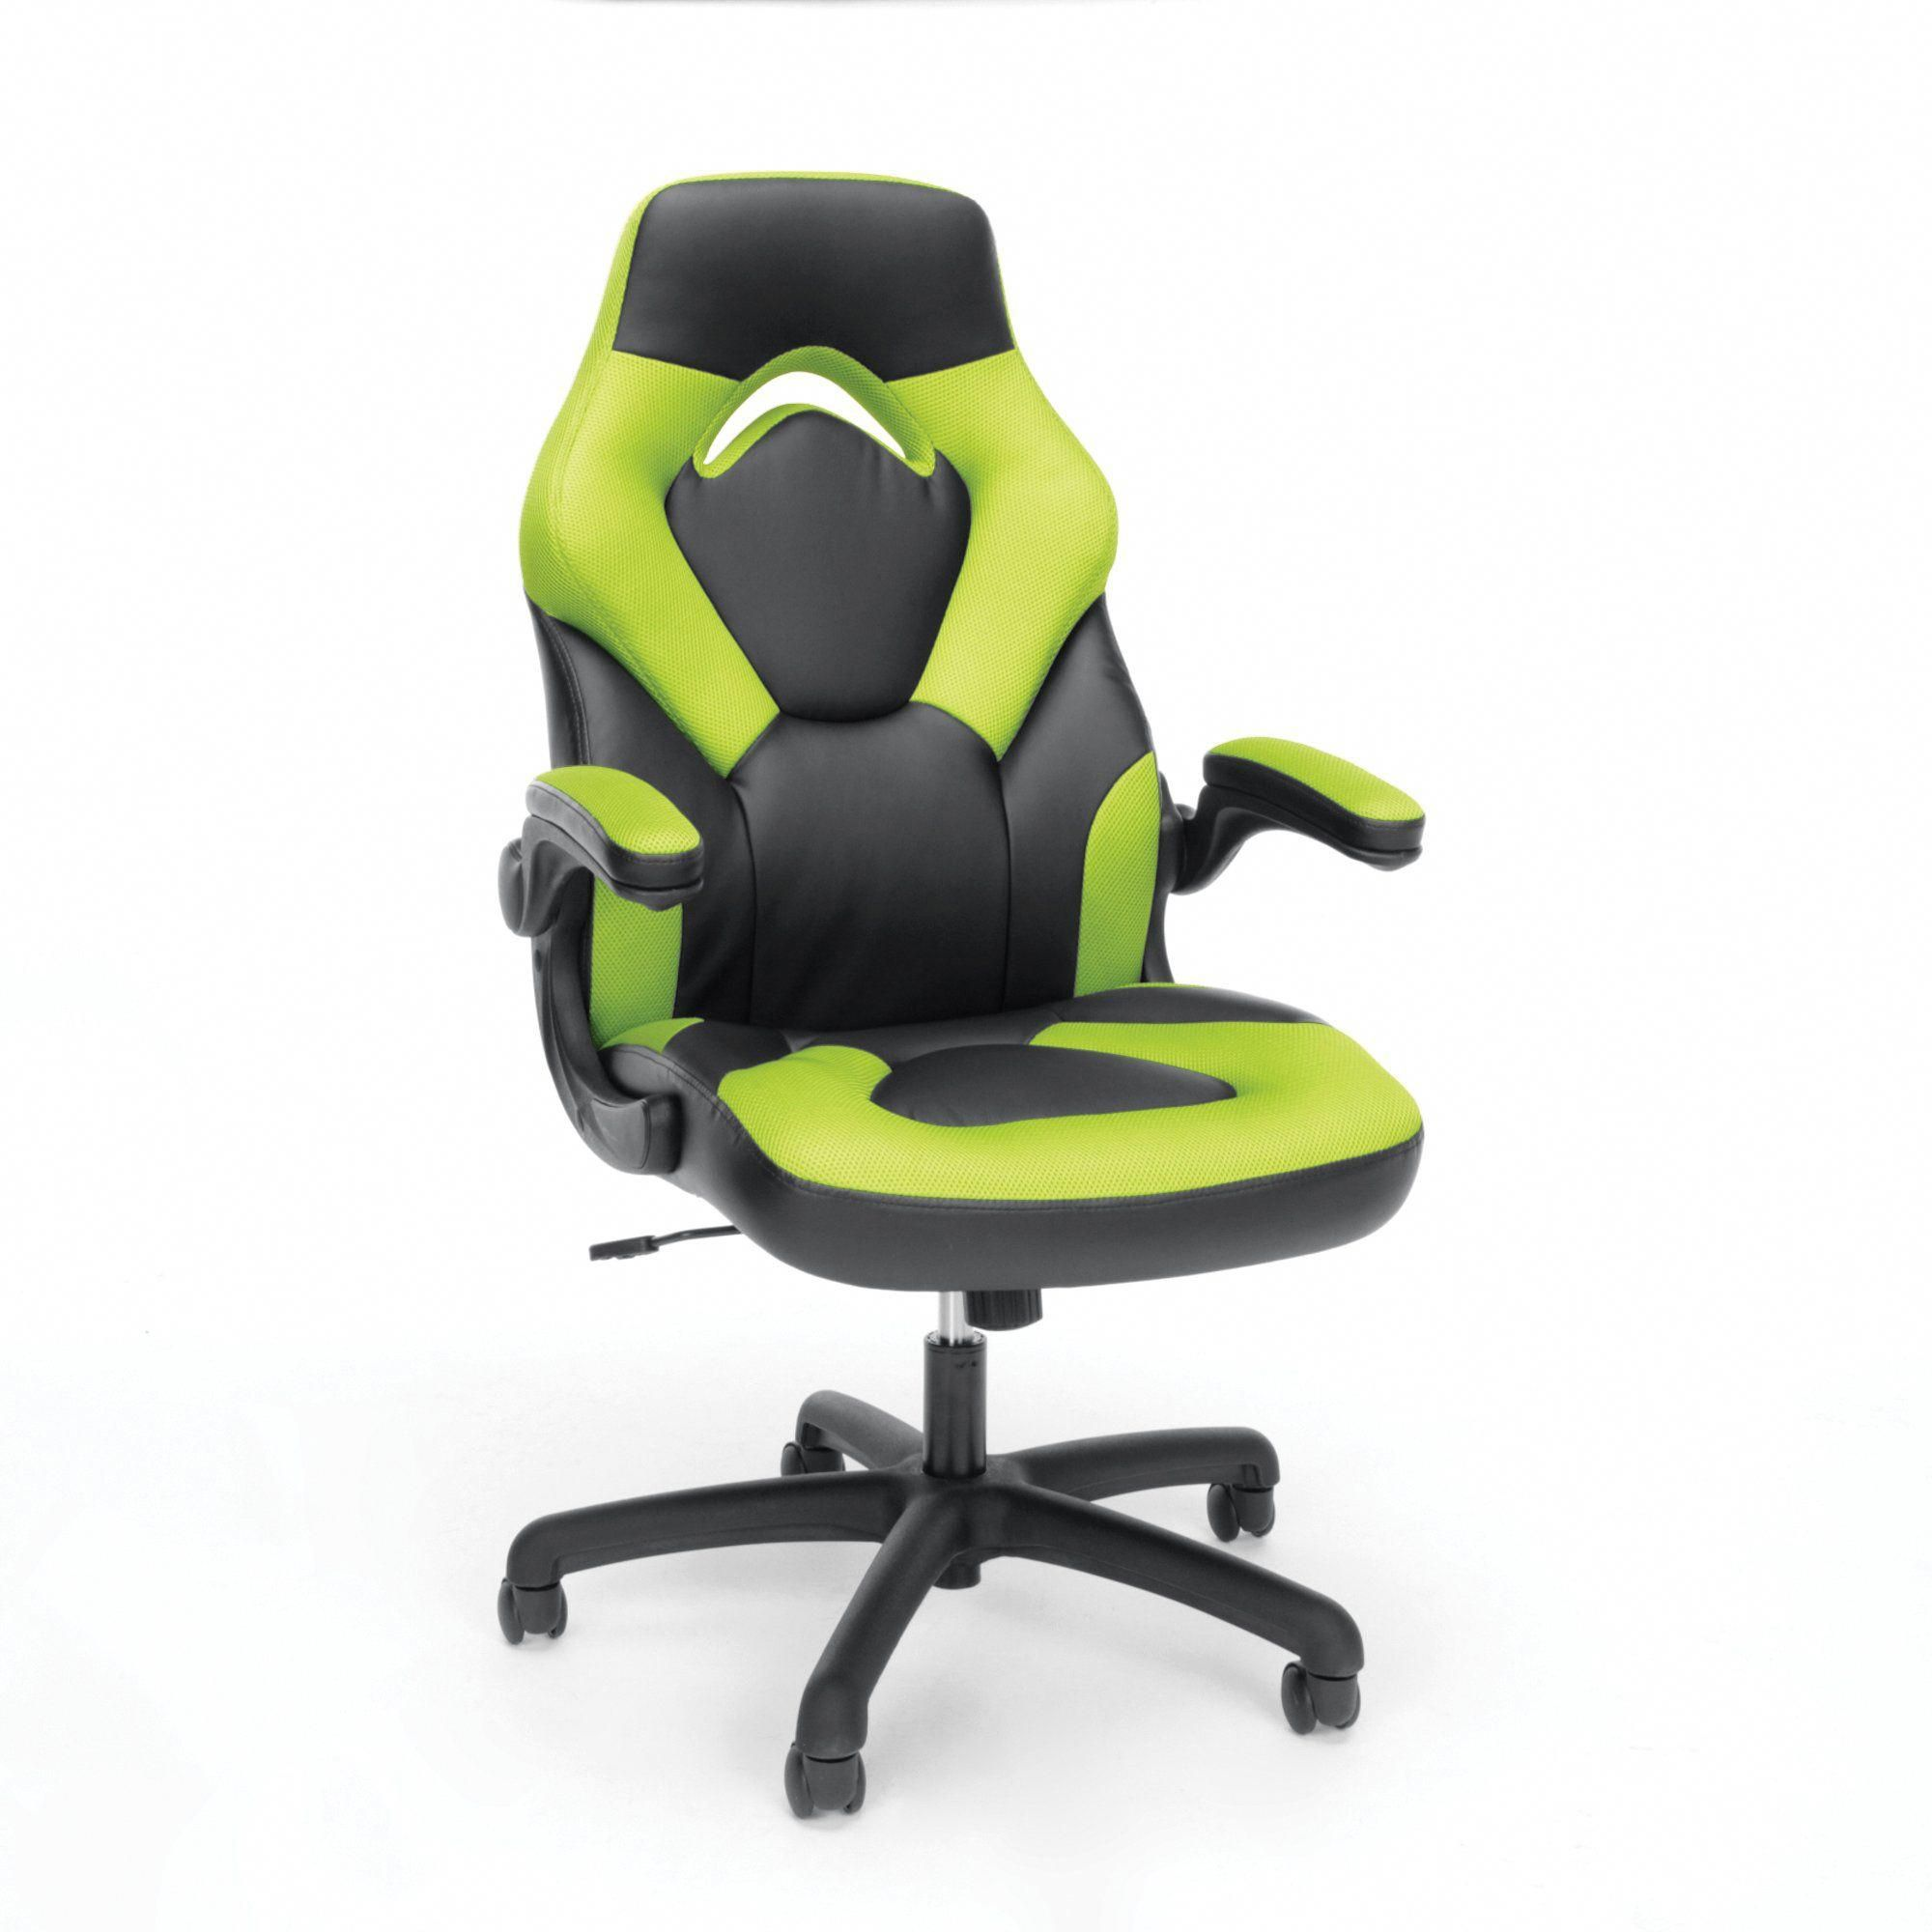 Green And Black Racing Style Leather Gaming Chair Essentials Gamingcomputerdeskstyle In 2020 Gaming Chair Racing Chair Office Gaming Chair